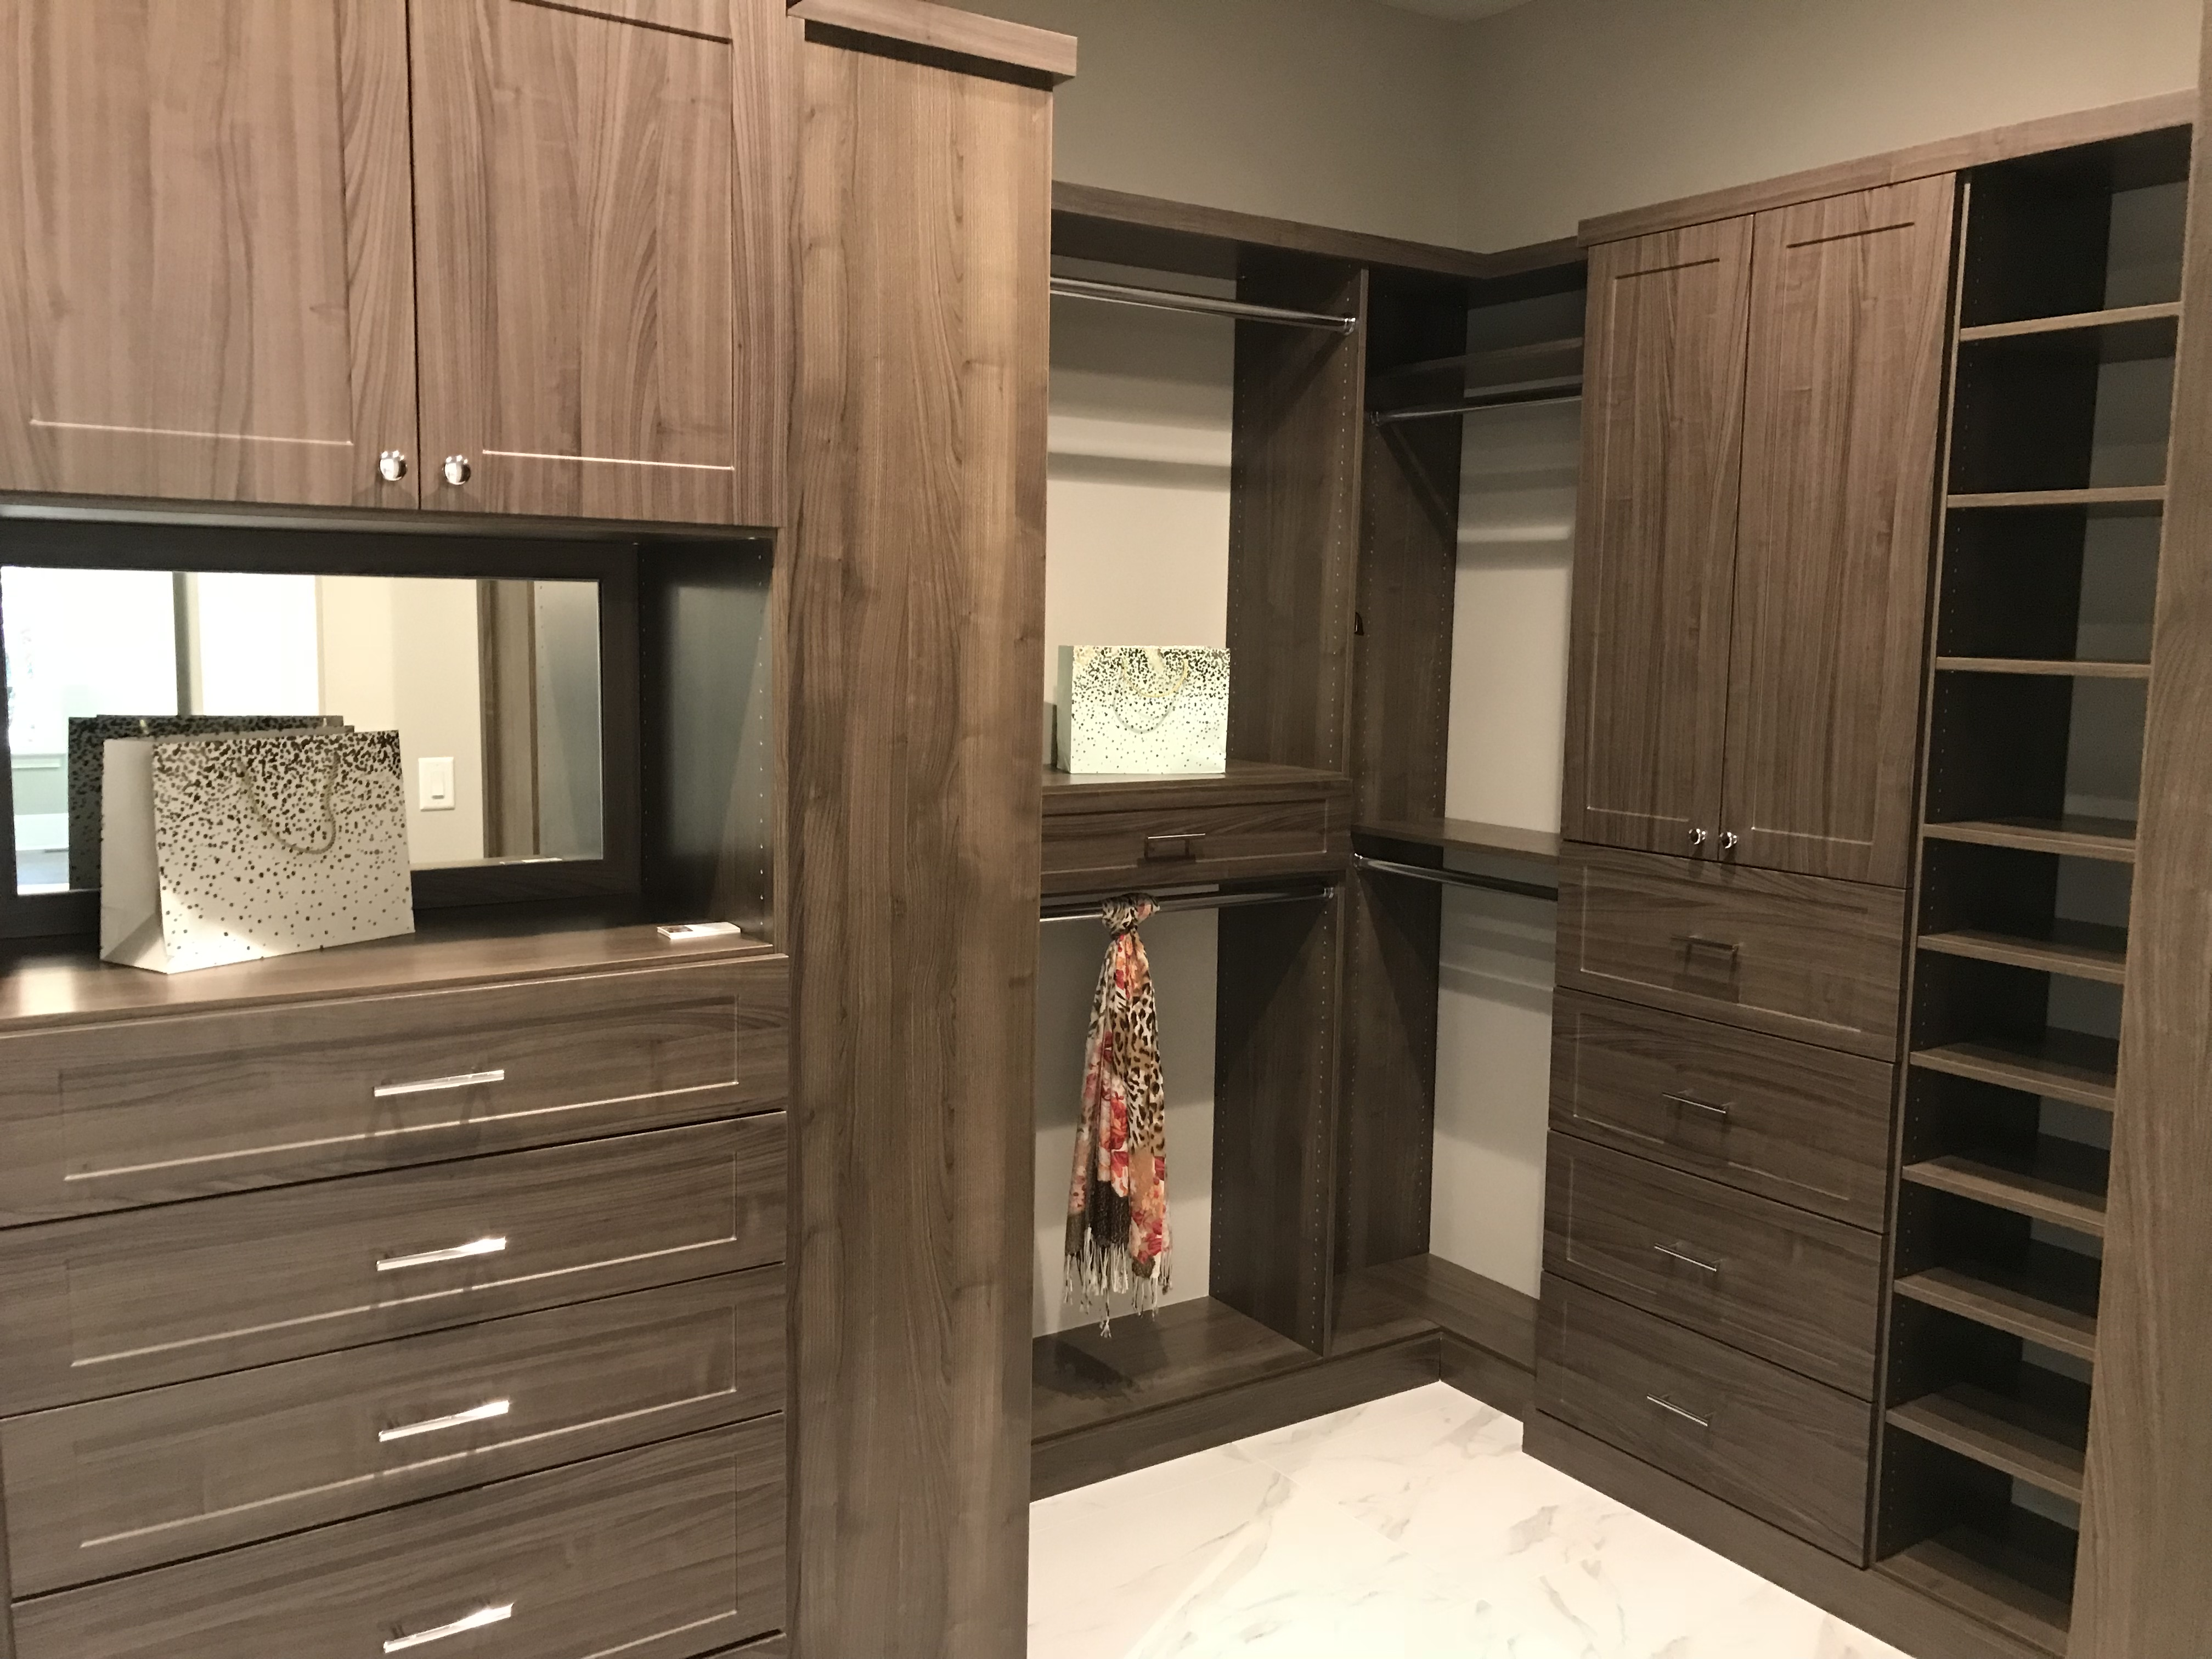 <div class='meta'><div class='origin-logo' data-origin='none'></div><span class='caption-text' data-credit='WTVD photo/Shawn Replogle'>Master closet - 6506 New Market Way, Raleigh, NC - $1.25 million by Raleigh Custom Homes</span></div>